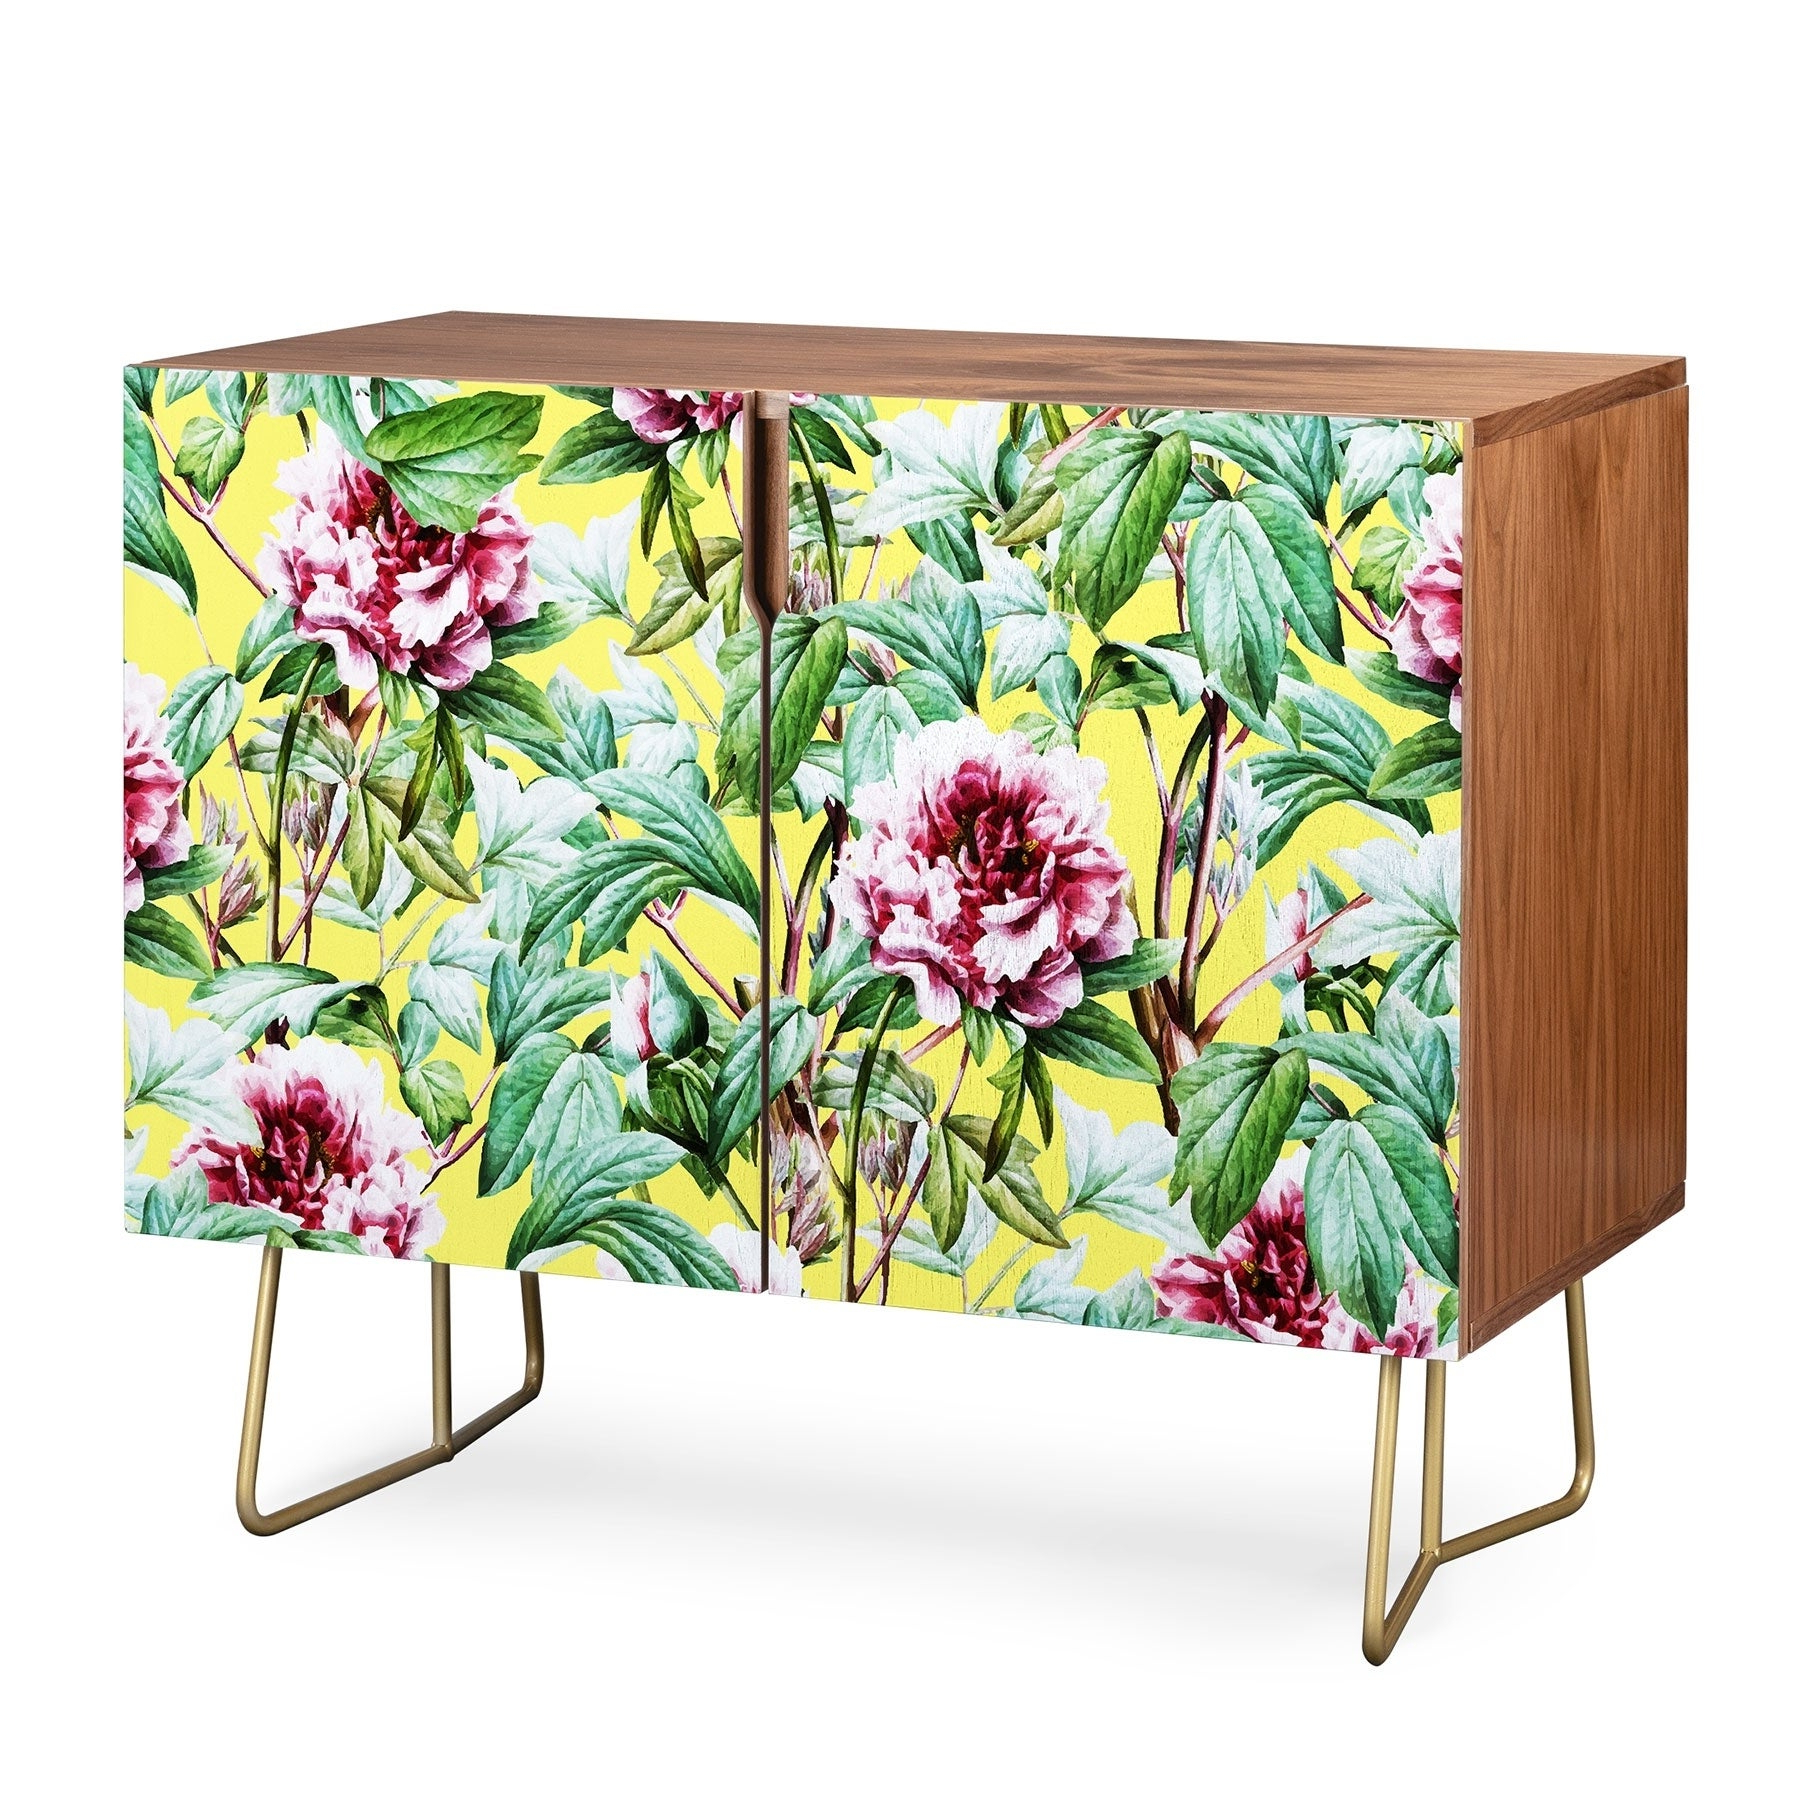 Deny Designs Yellow Flora Credenza (Birch Or Walnut, 2 Leg Options) In Floral Blush Yellow Credenzas (View 2 of 20)